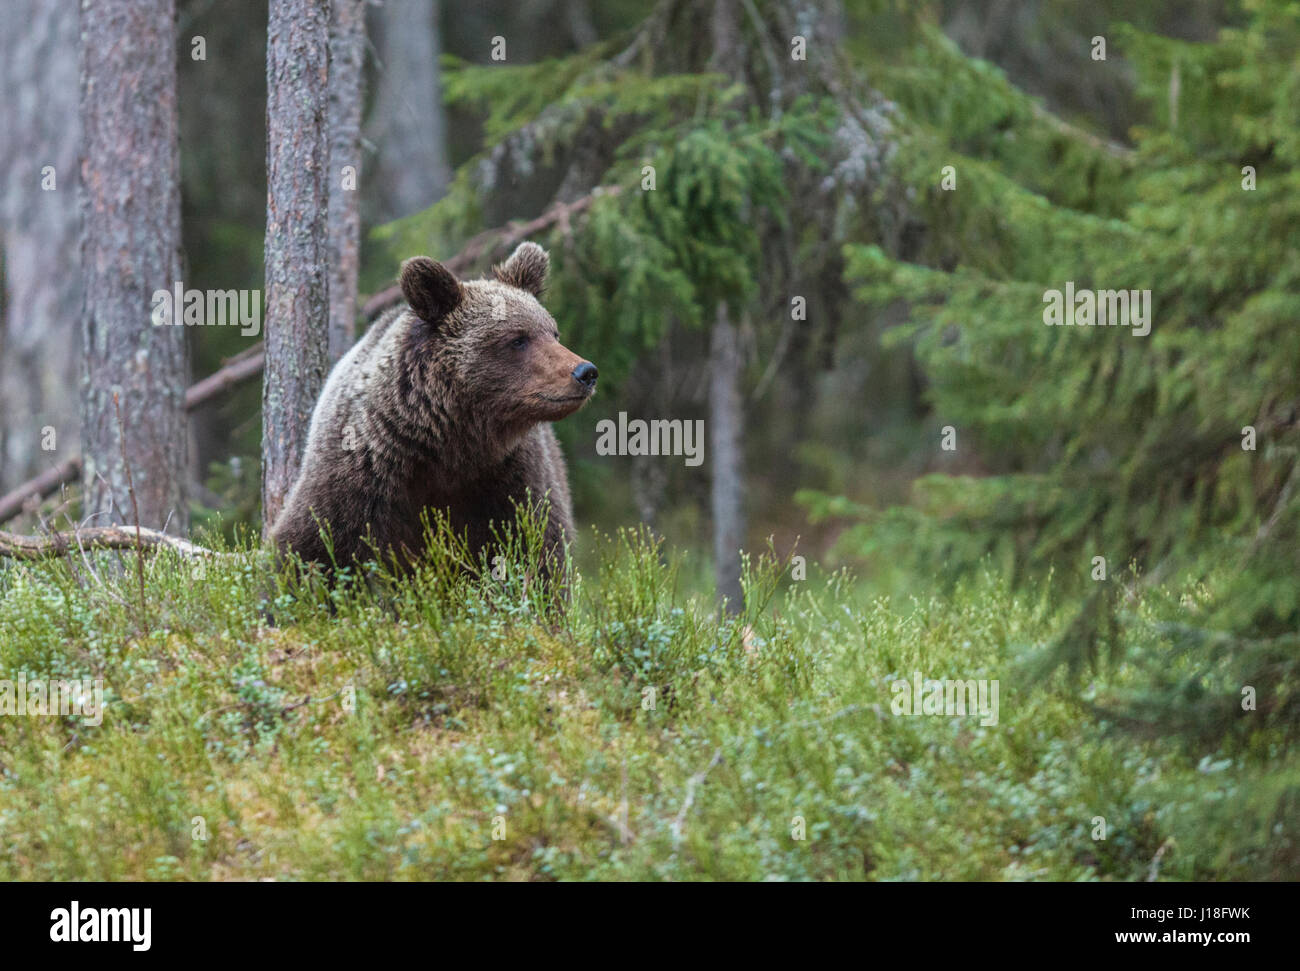 Brown bear, Ursus arctos, sitting down in forest looking at side beyond camera, Kuhmo, Finland - Stock Image